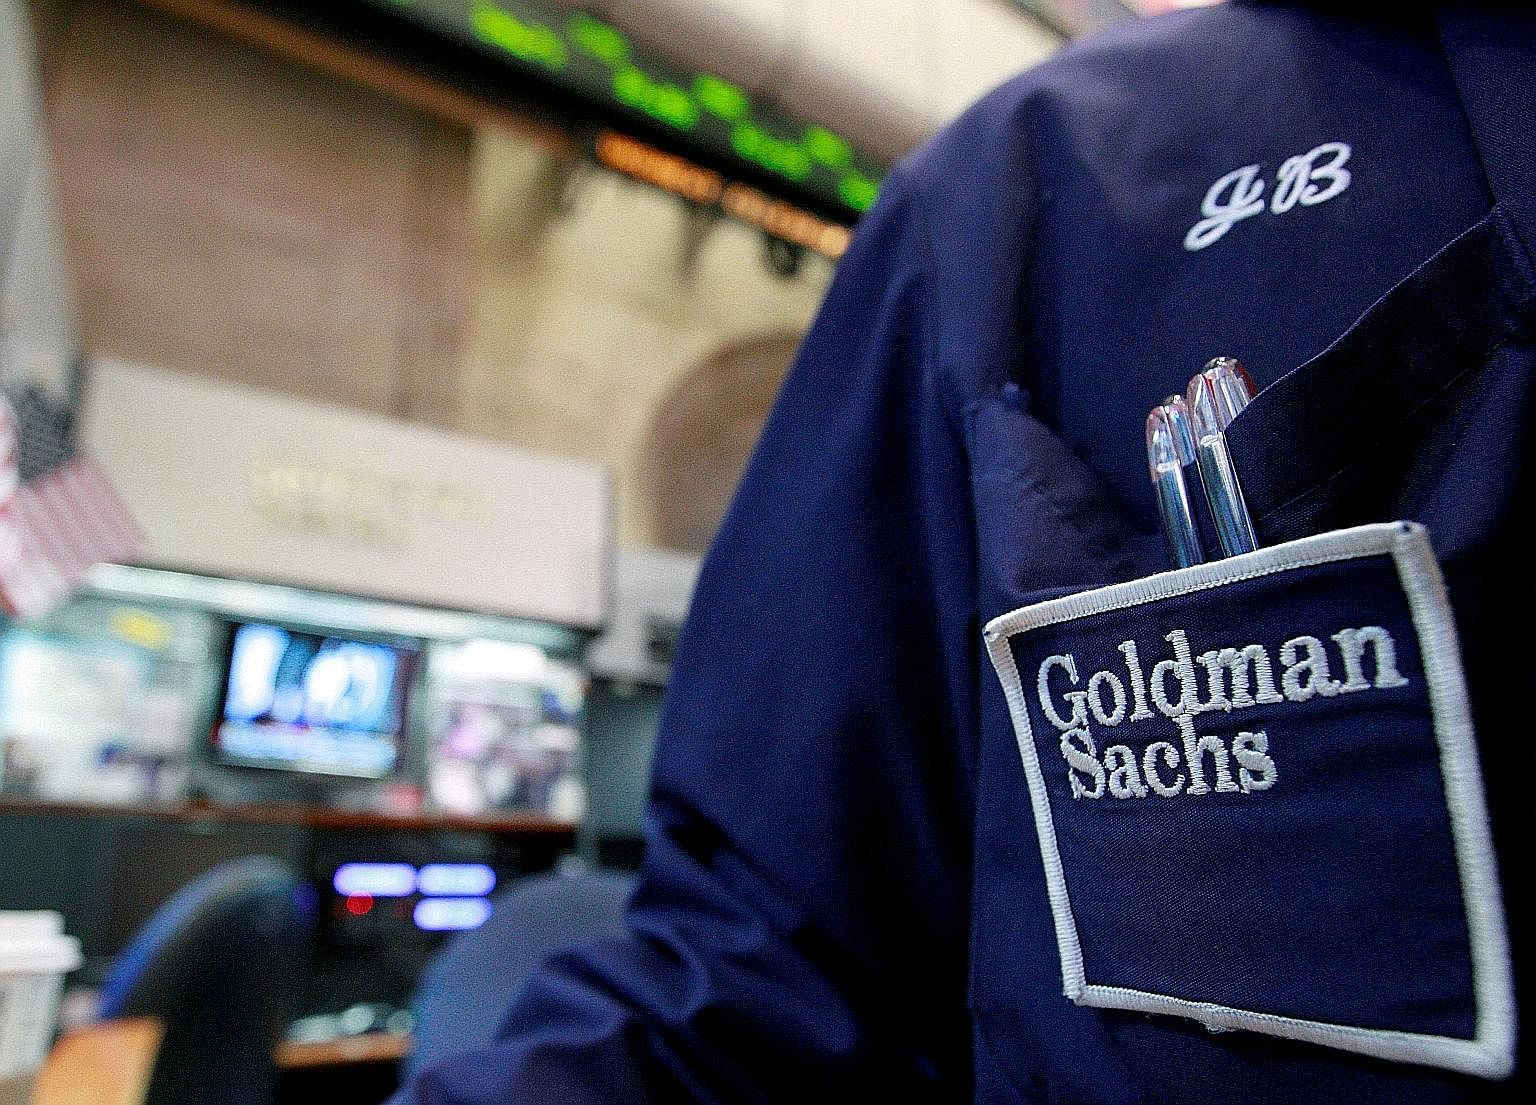 Early adopters like Goldman Sachs are working with tech, including machine-learning software that improves itself by searching data for patterns.